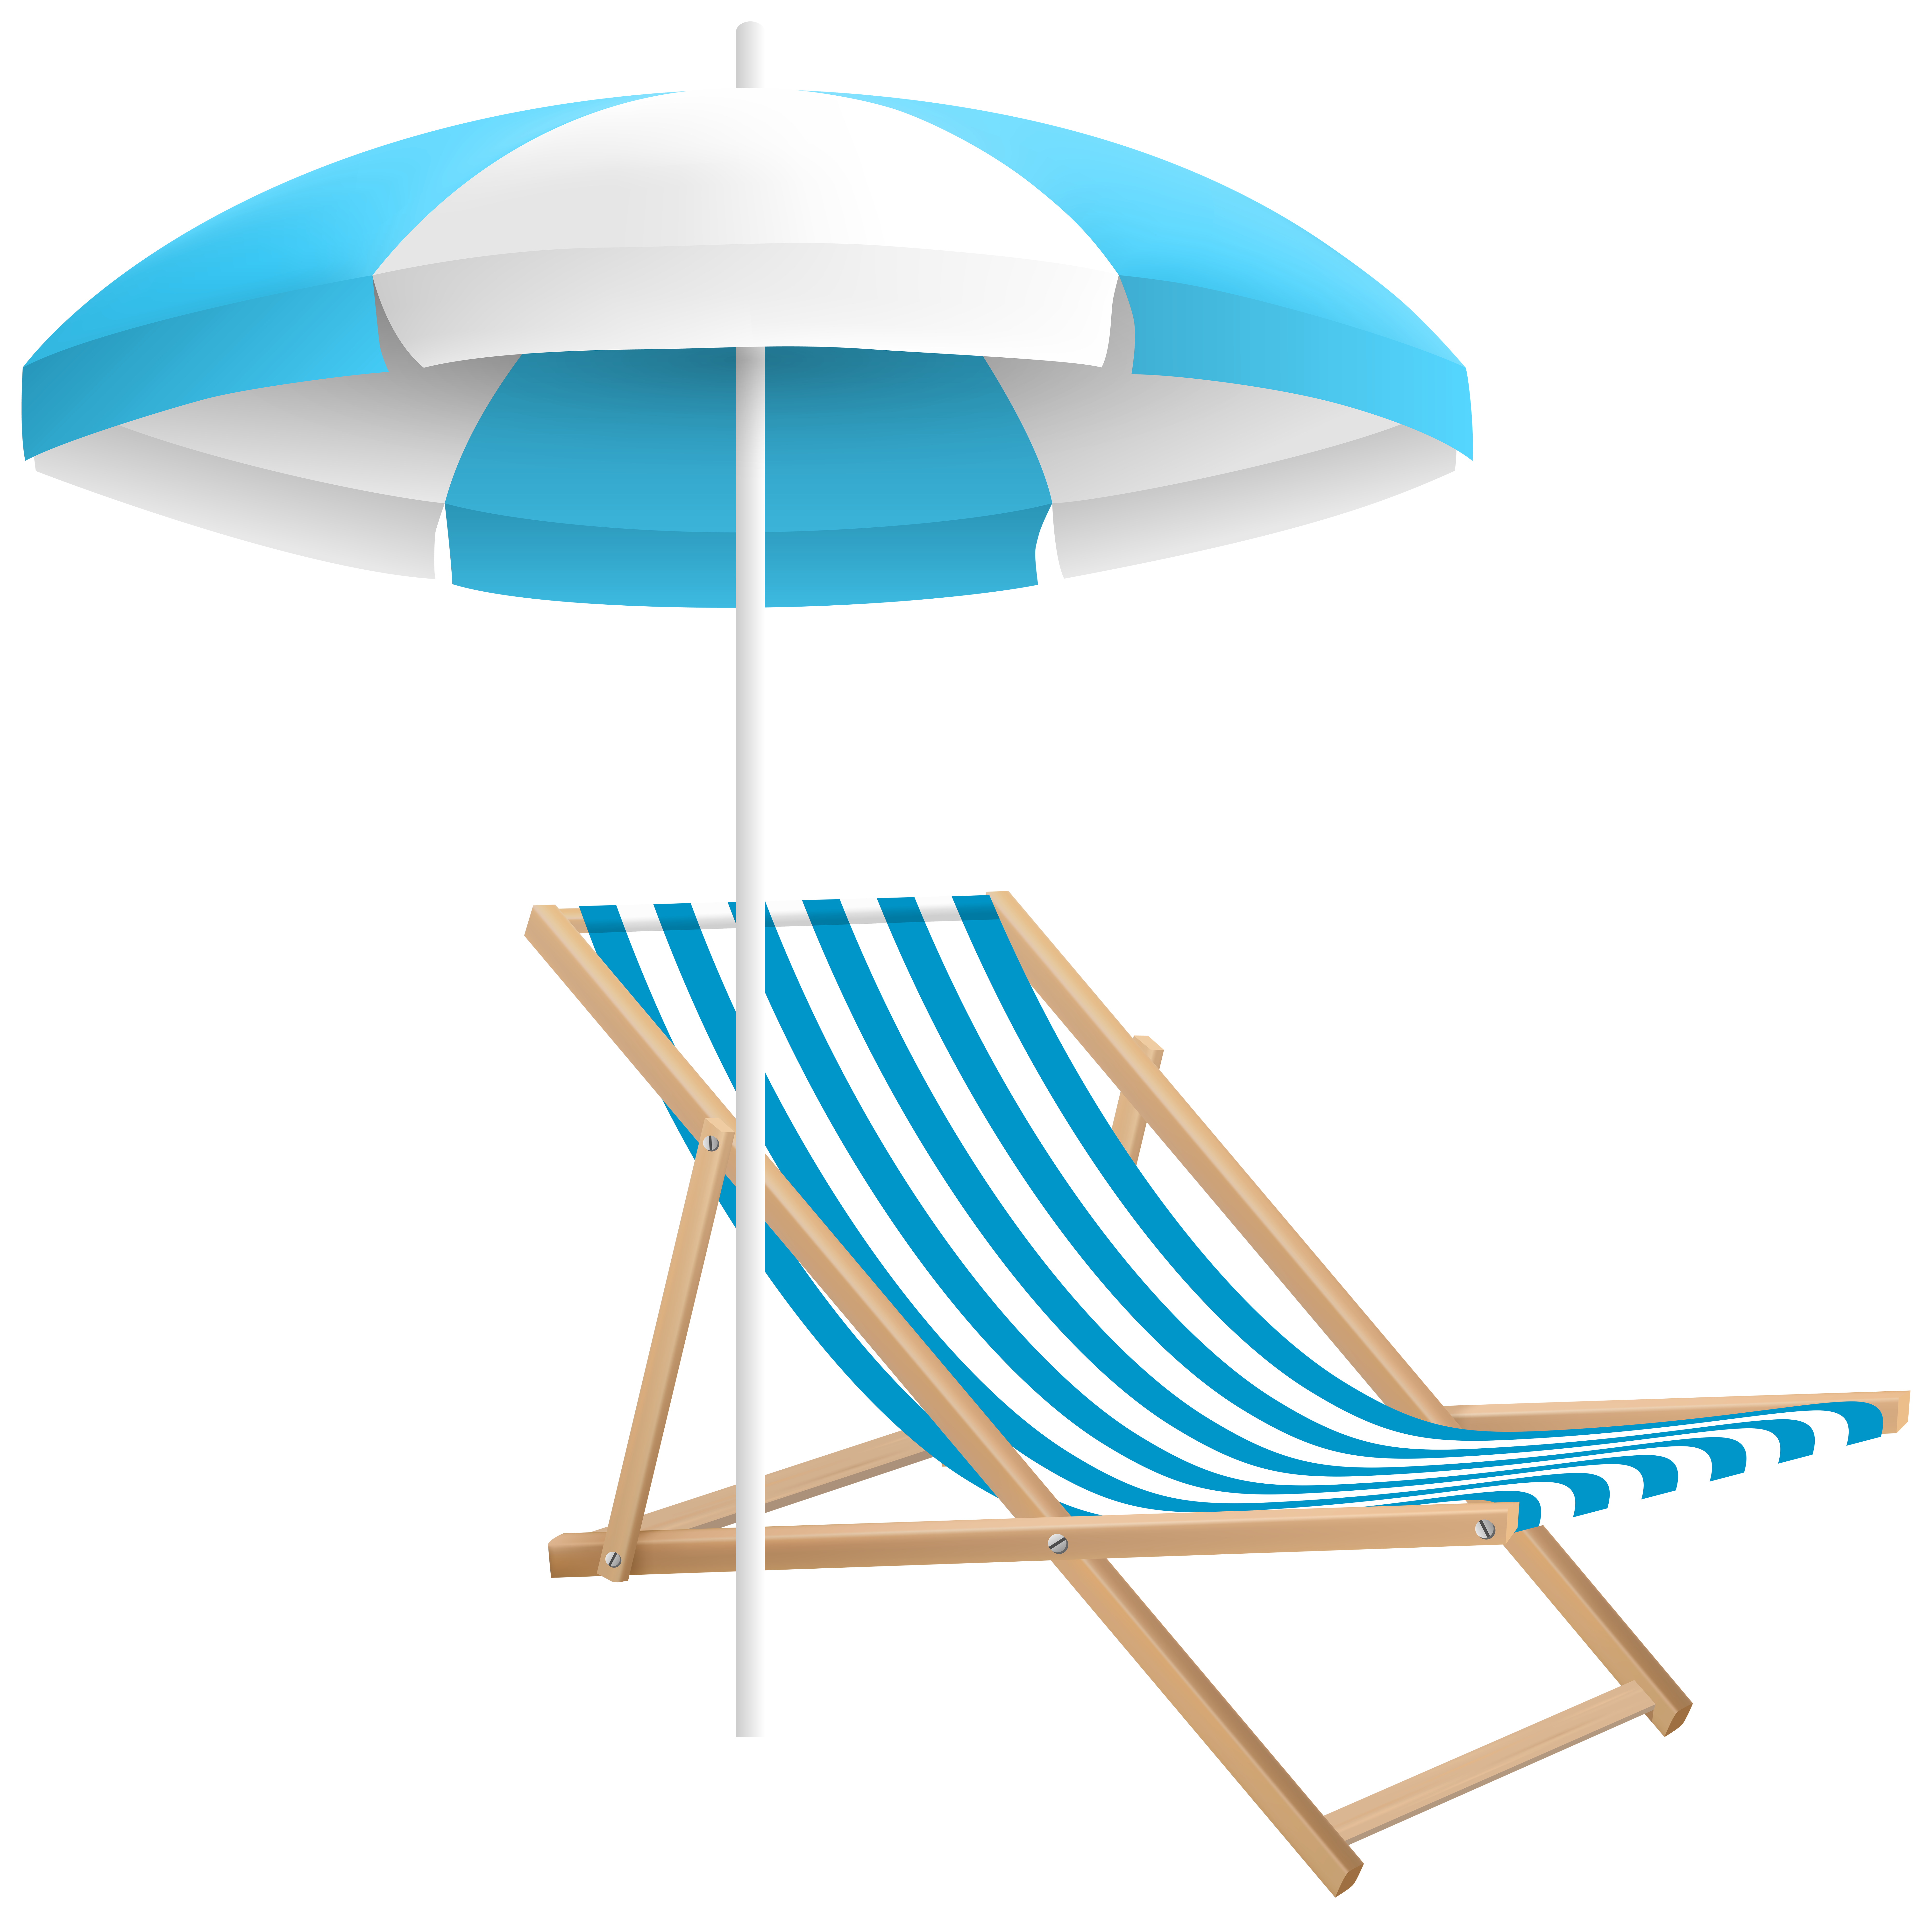 clip art royalty free Beach transparent clipart. Chair and umbrella png